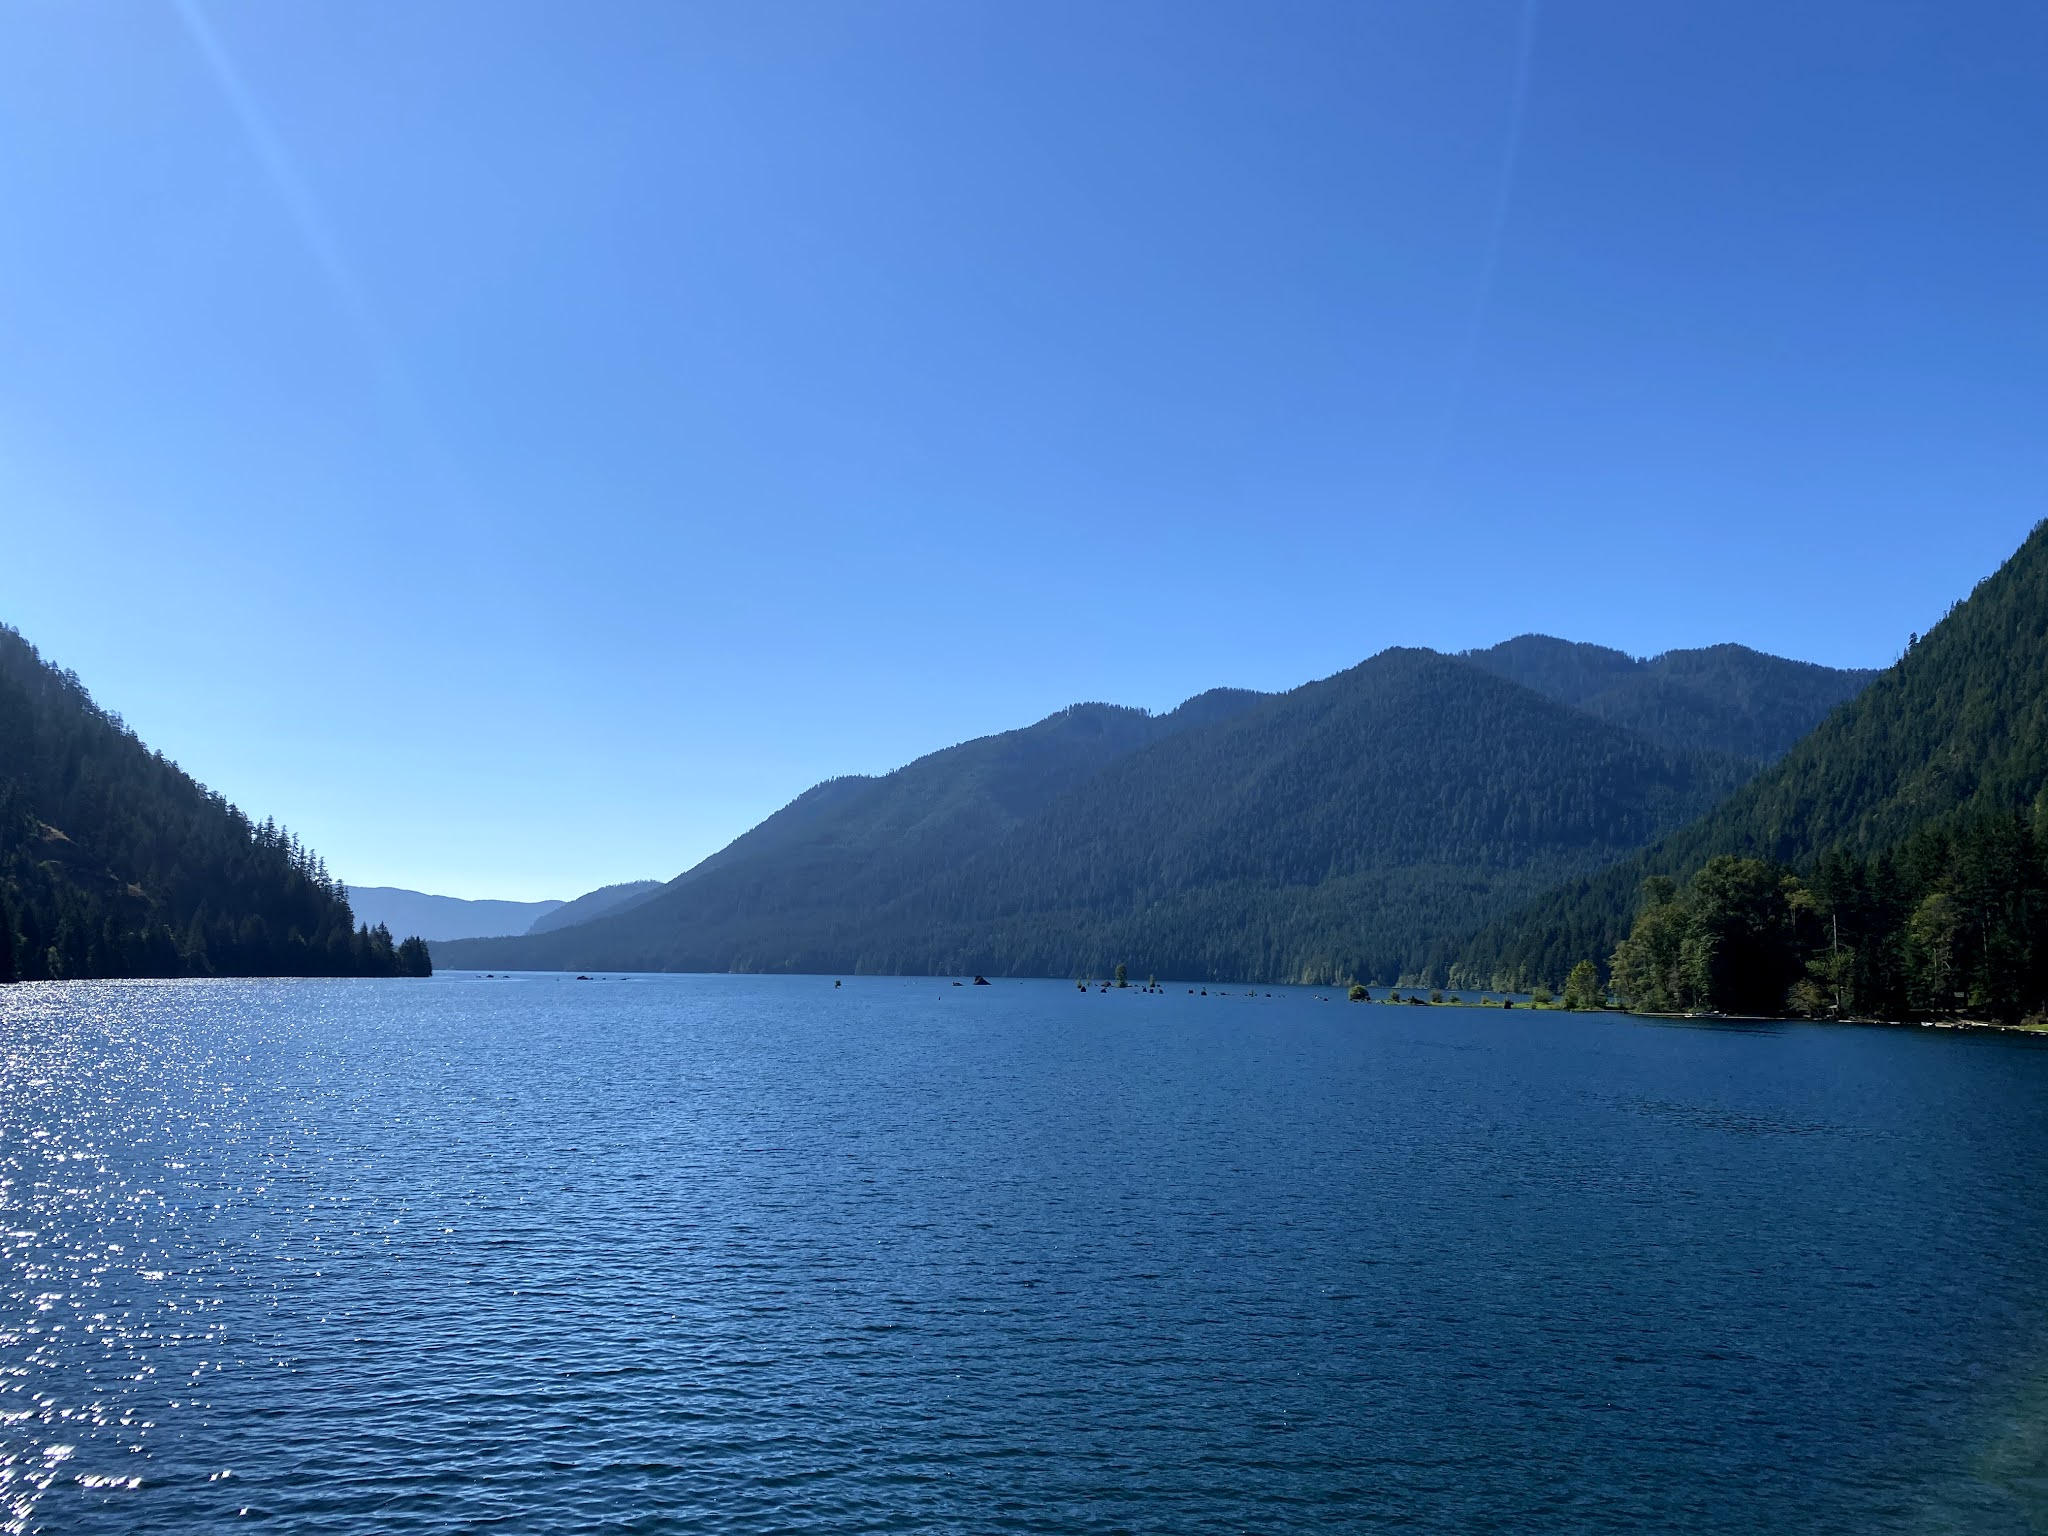 Lake Cushman, Washington | biblio-style.com